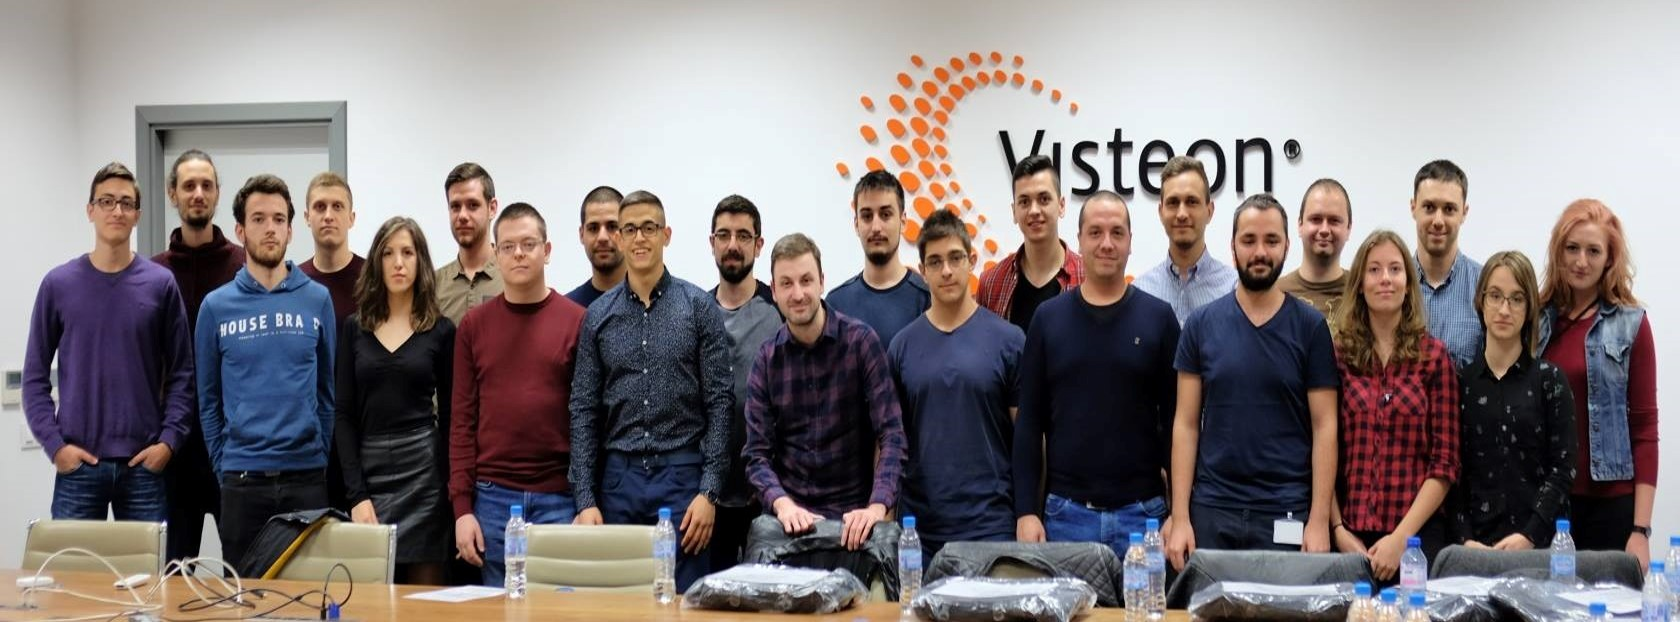 Graduates from Visteon's fourth Engineering Academy program in Sofia, Bulgaria